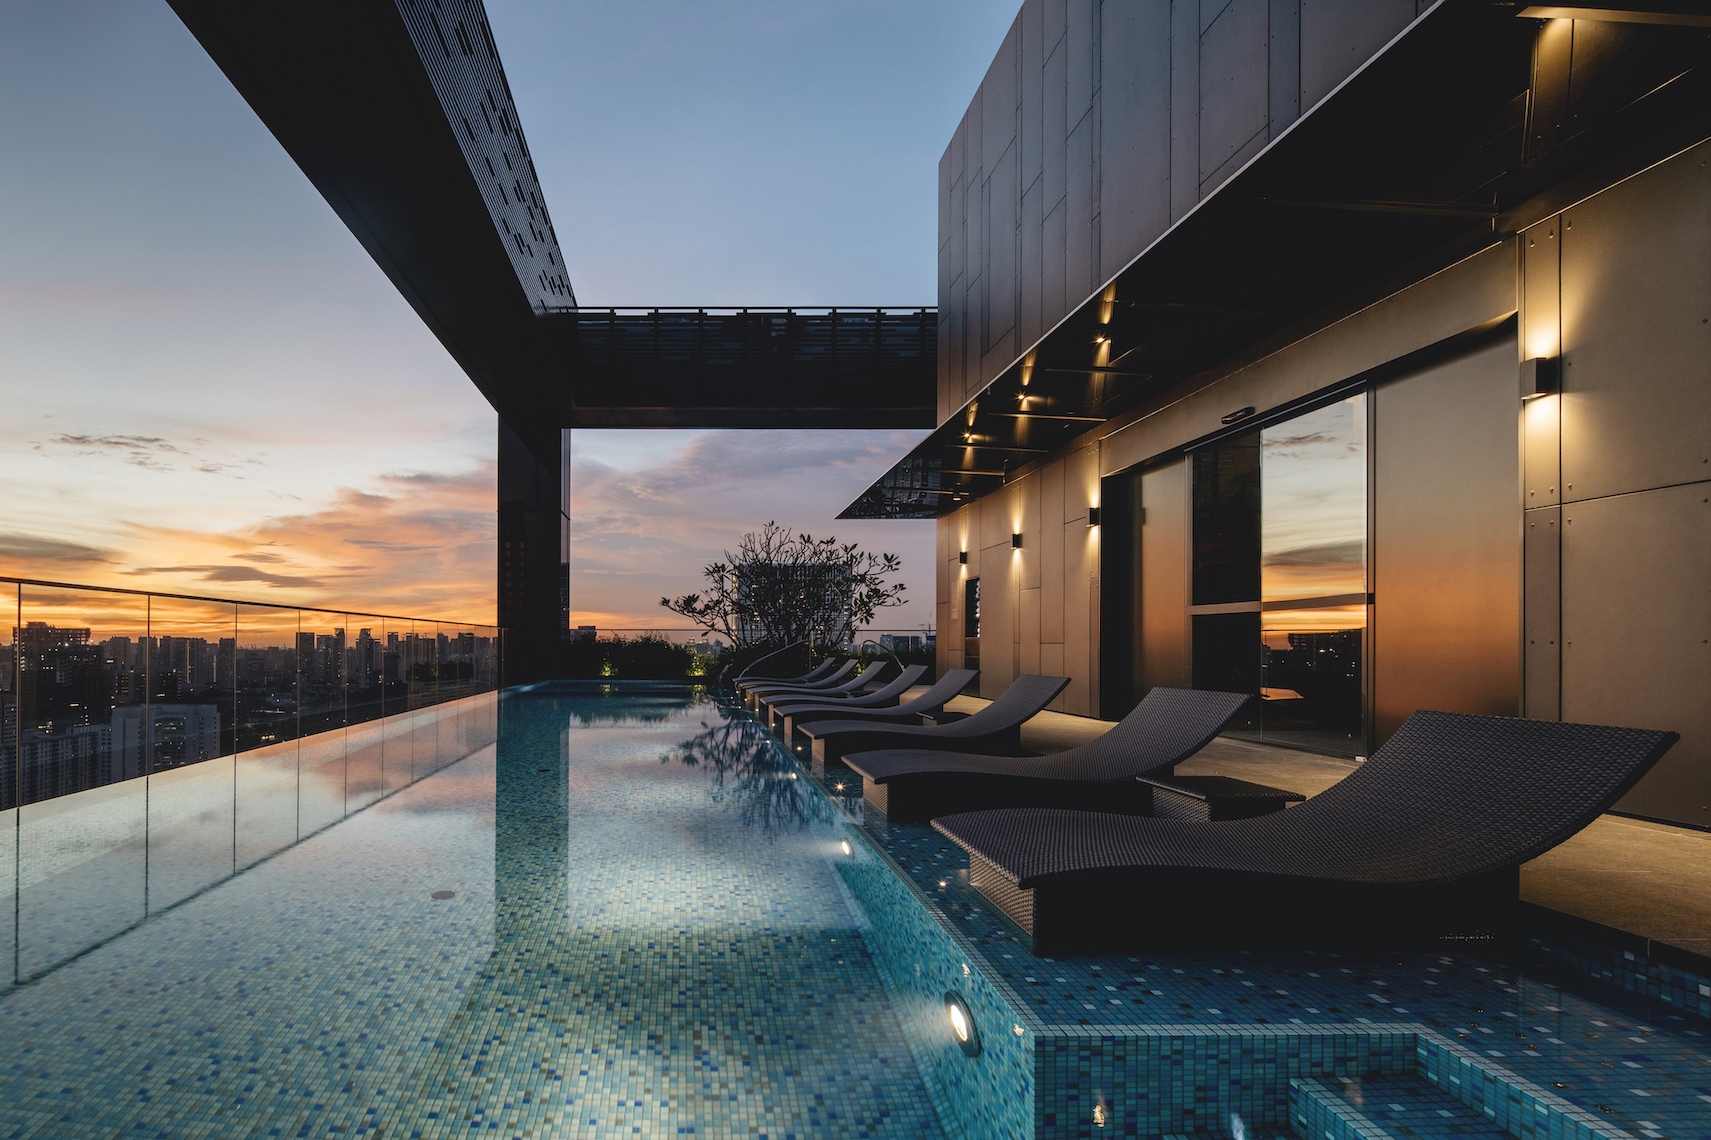 The Clan Hotel Singapore sky pool at night